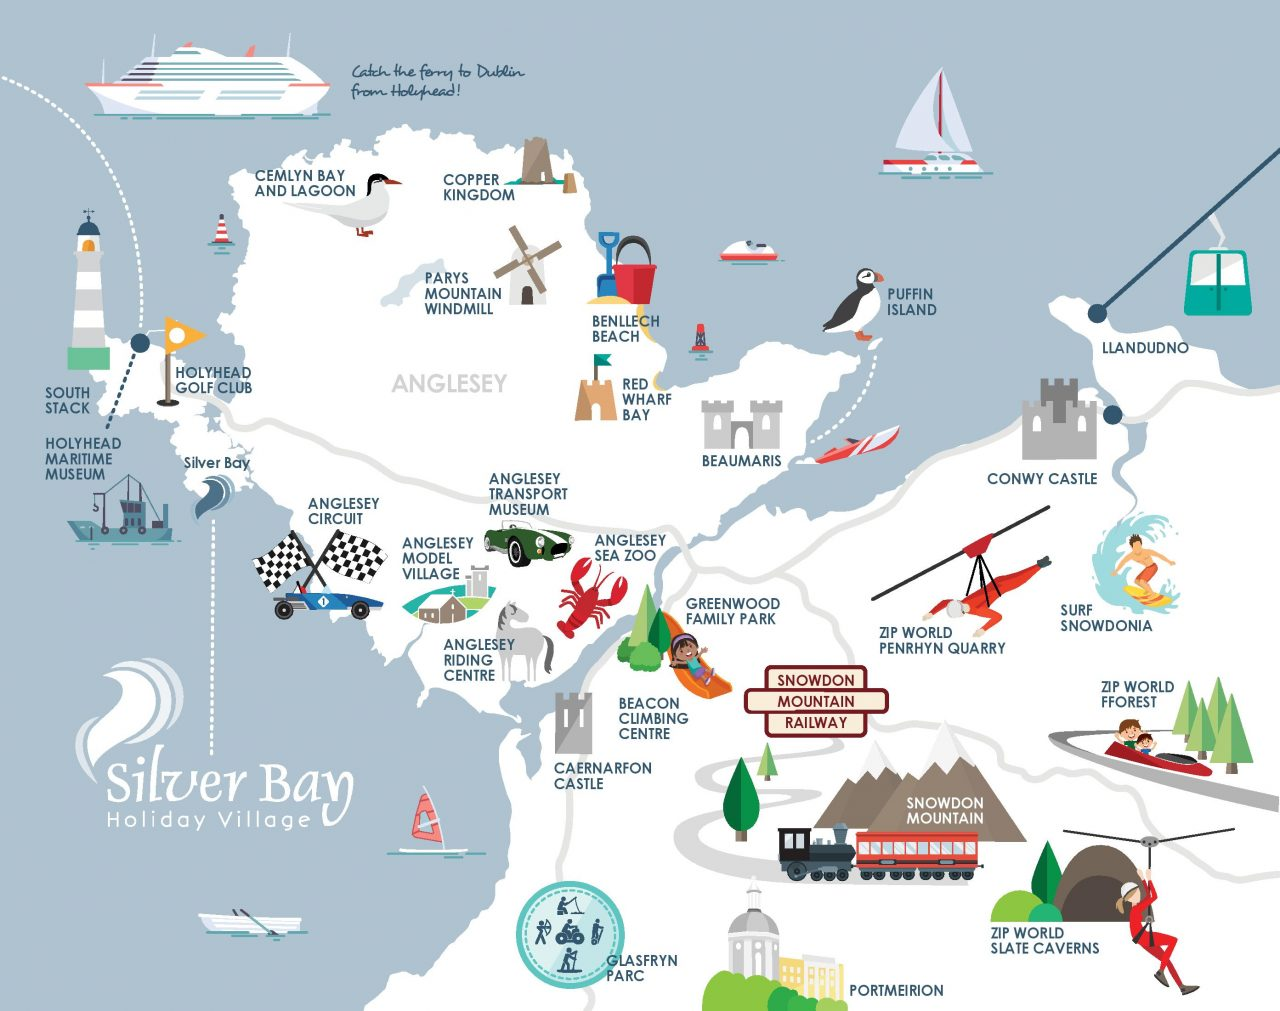 J0000_SilverBay_Attractions_Map_NEW-page-001-1280x1011.jpg